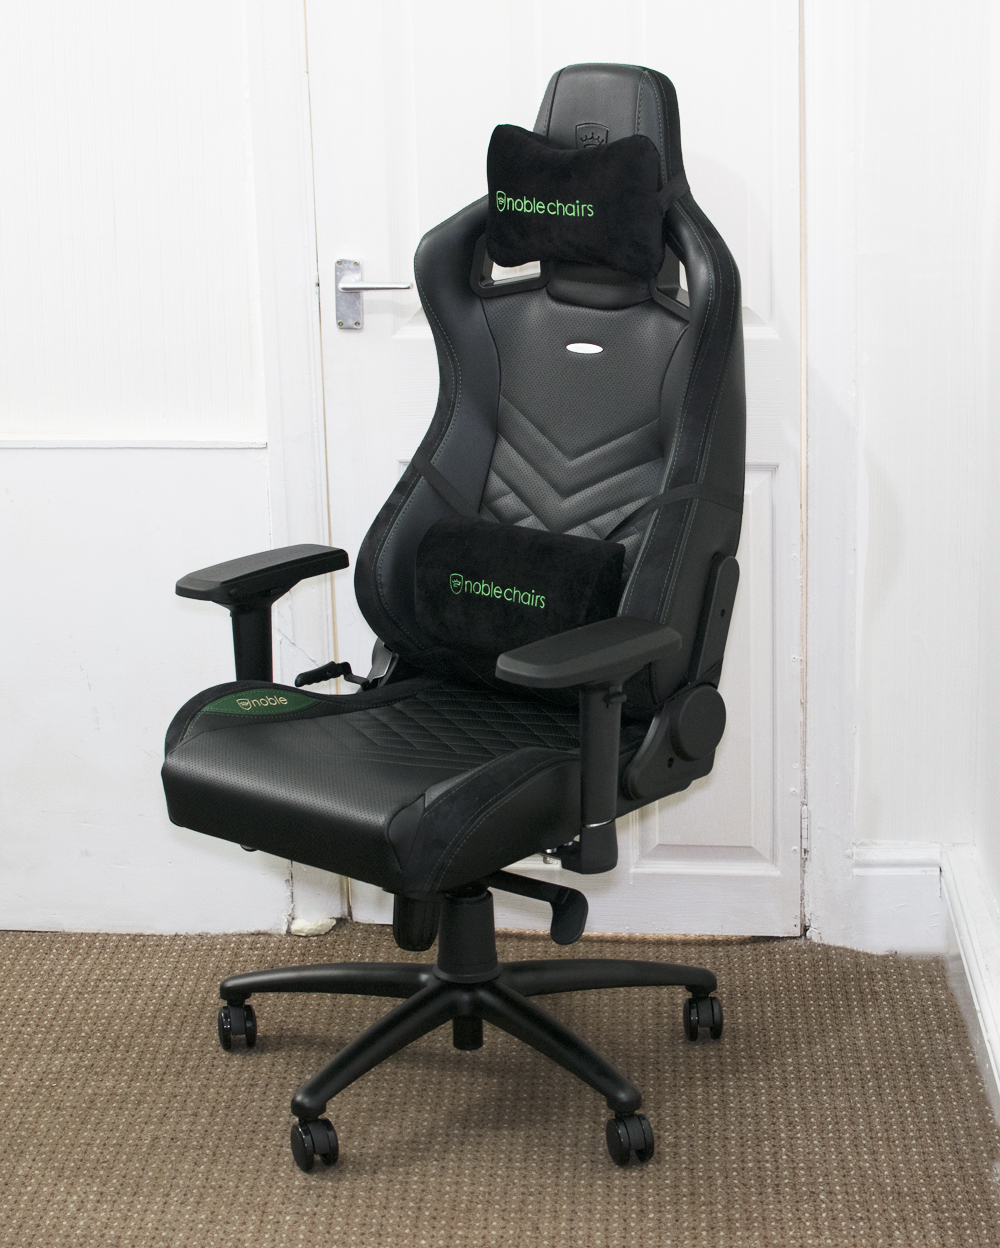 noblechairs-epic-review-full-chair